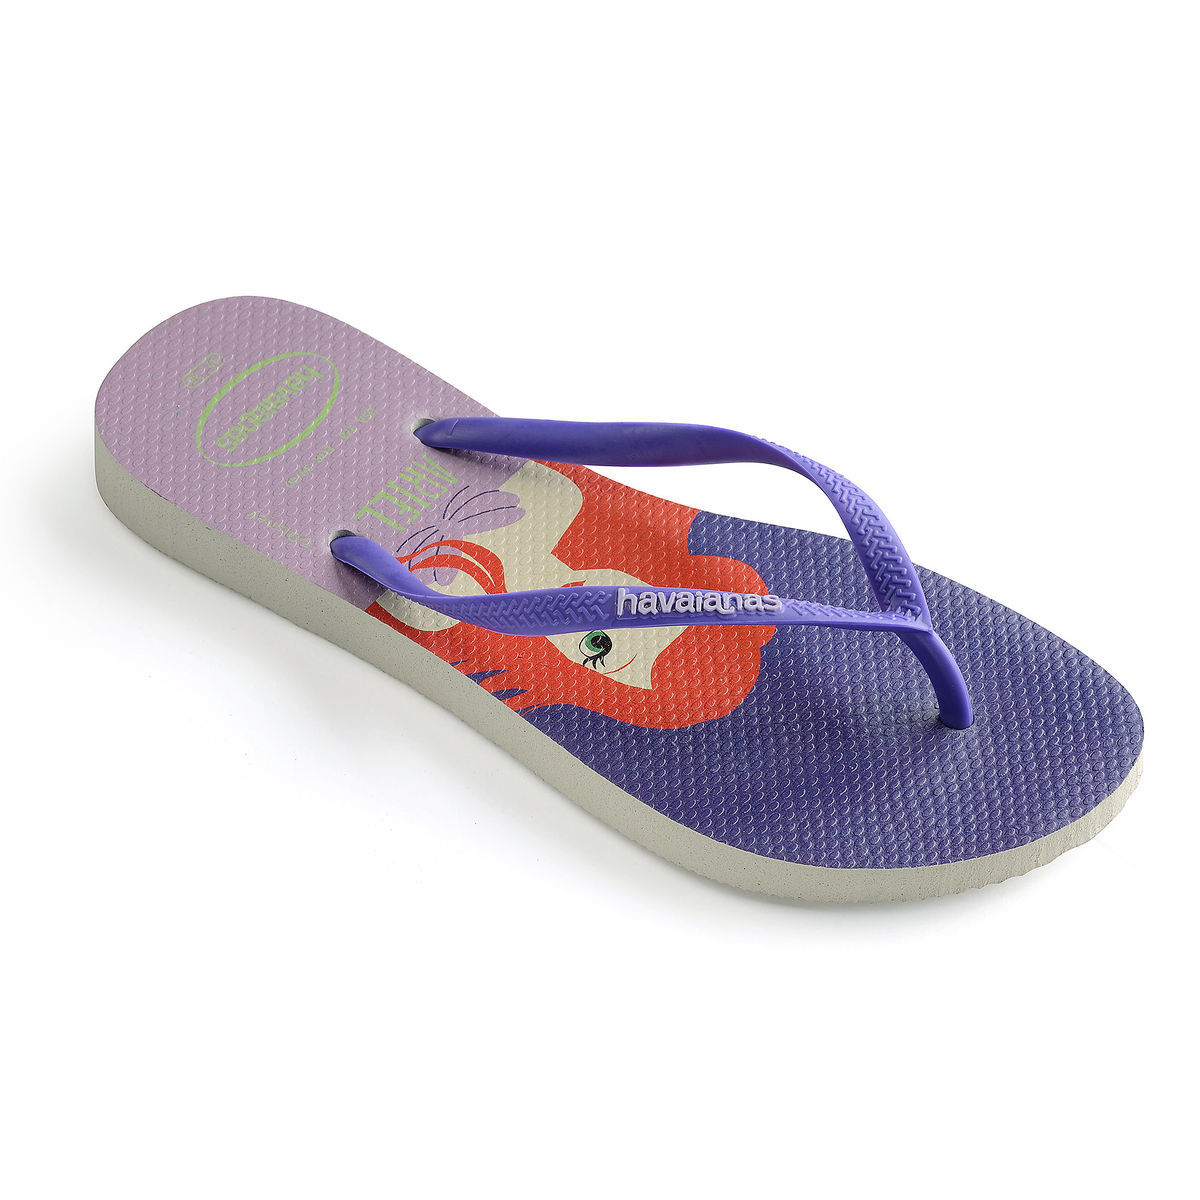 e4a316088b4d3 Product Image of Ariel Flip Flops for Women by Havaianas   1